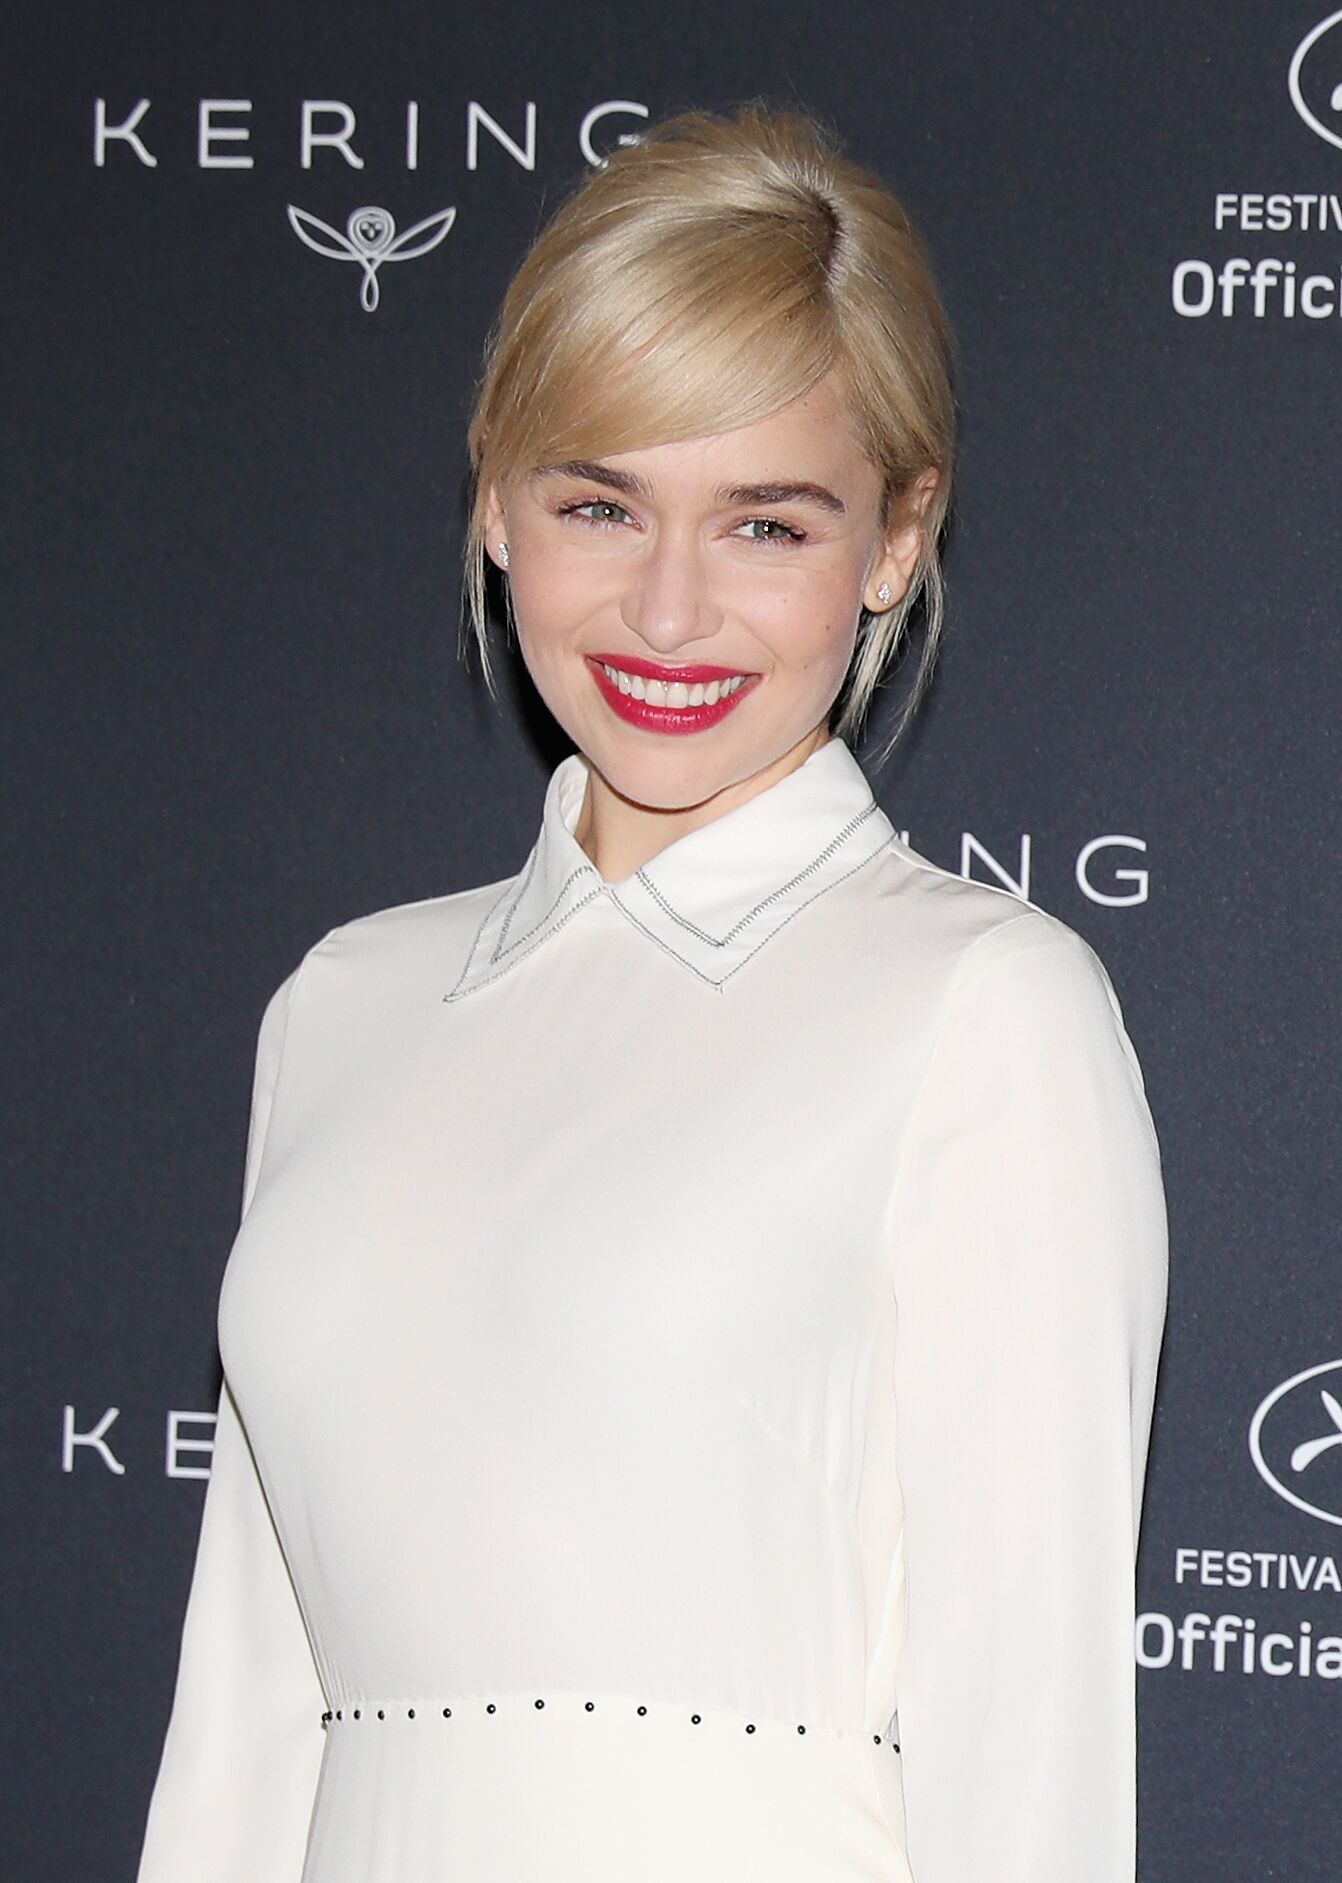 Emilia Clarke attends the Kering Women In Motion photocall. | Source: Getty Images